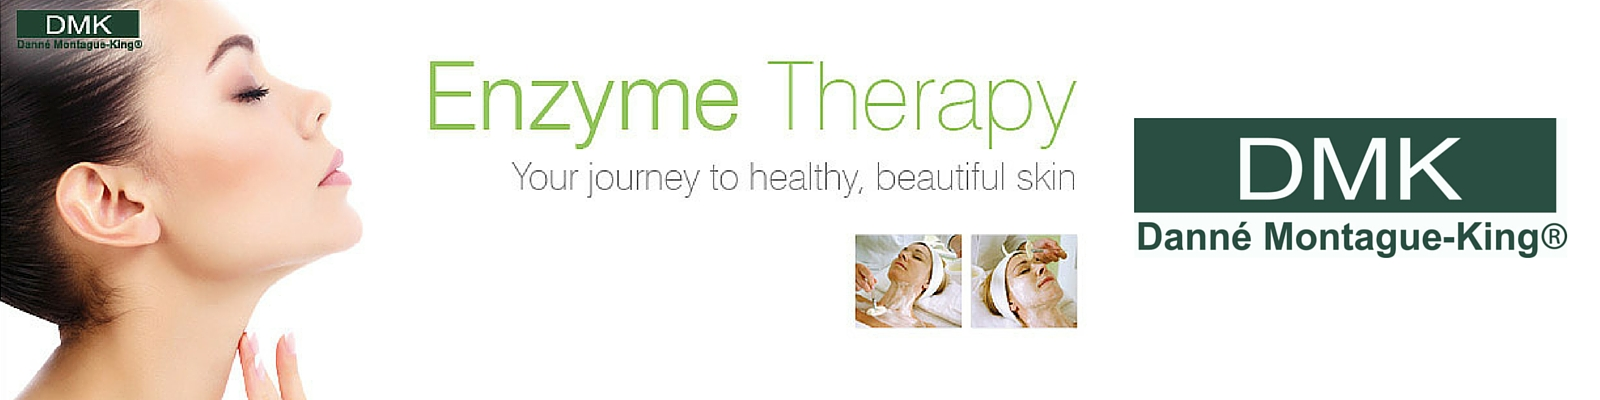 DMK Enzyme Therapy